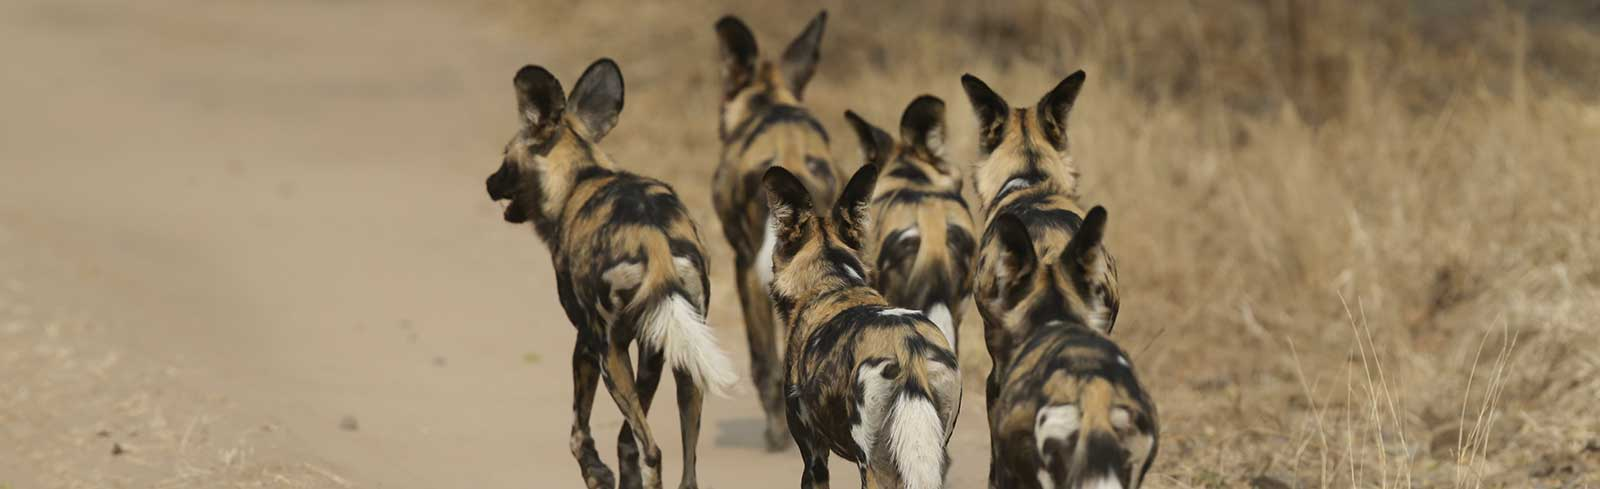 Painted Wolves Packs in Mana Pools